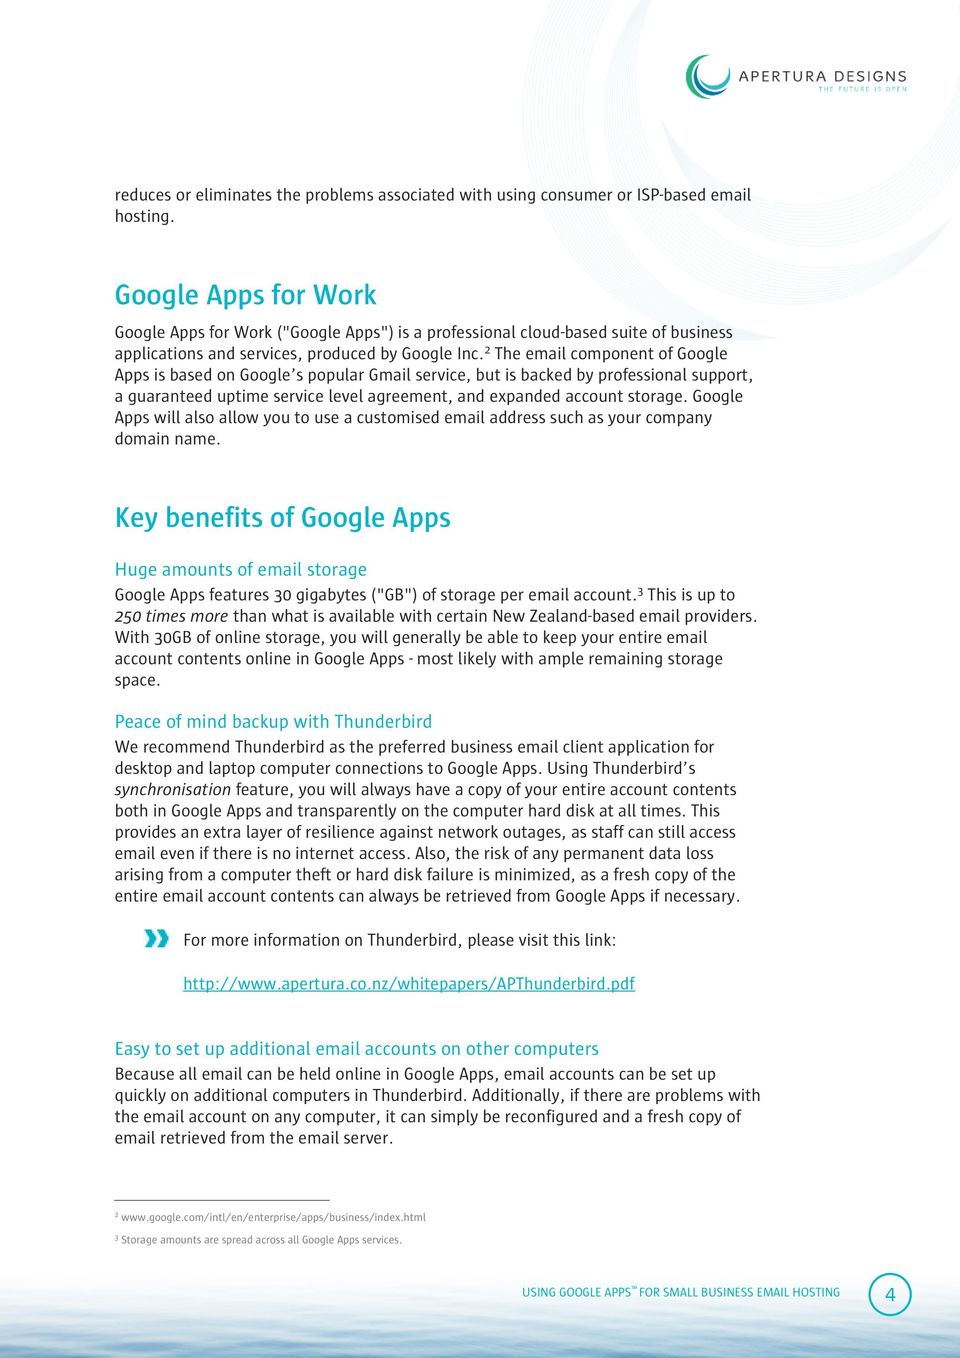 2 The email component of Google Apps is based on Google's popular Gmail service, but is backed by professional support, a guaranteed uptime service level agreement, and expanded account storage.